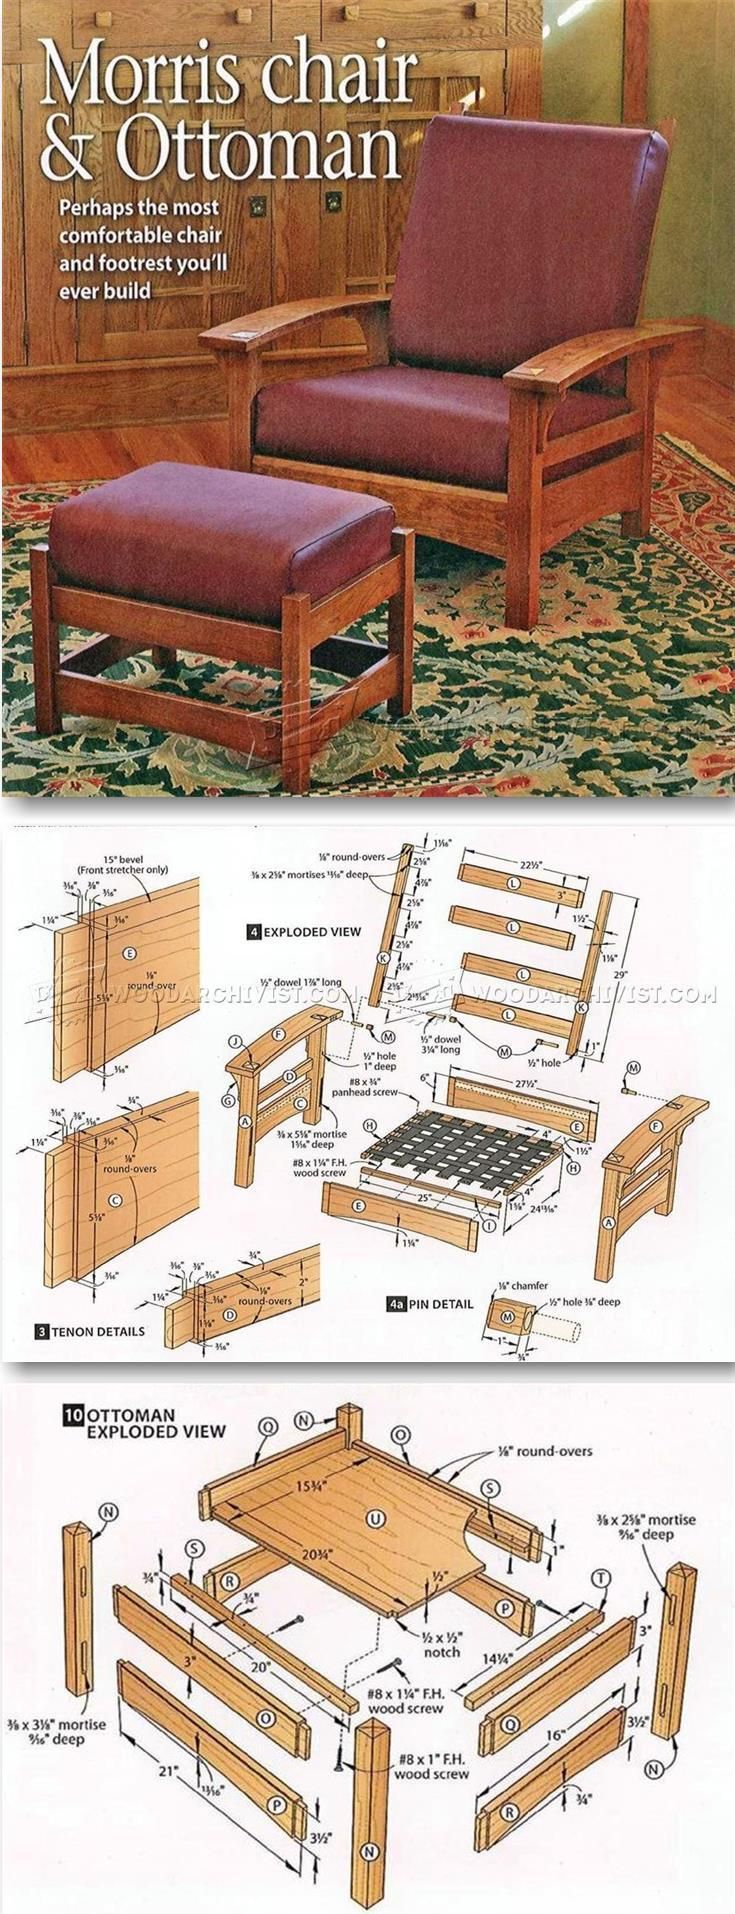 Morris Chair and Ottoman Plans - Furniture Plans and Projects | WoodArchivist.com | чертежи ...